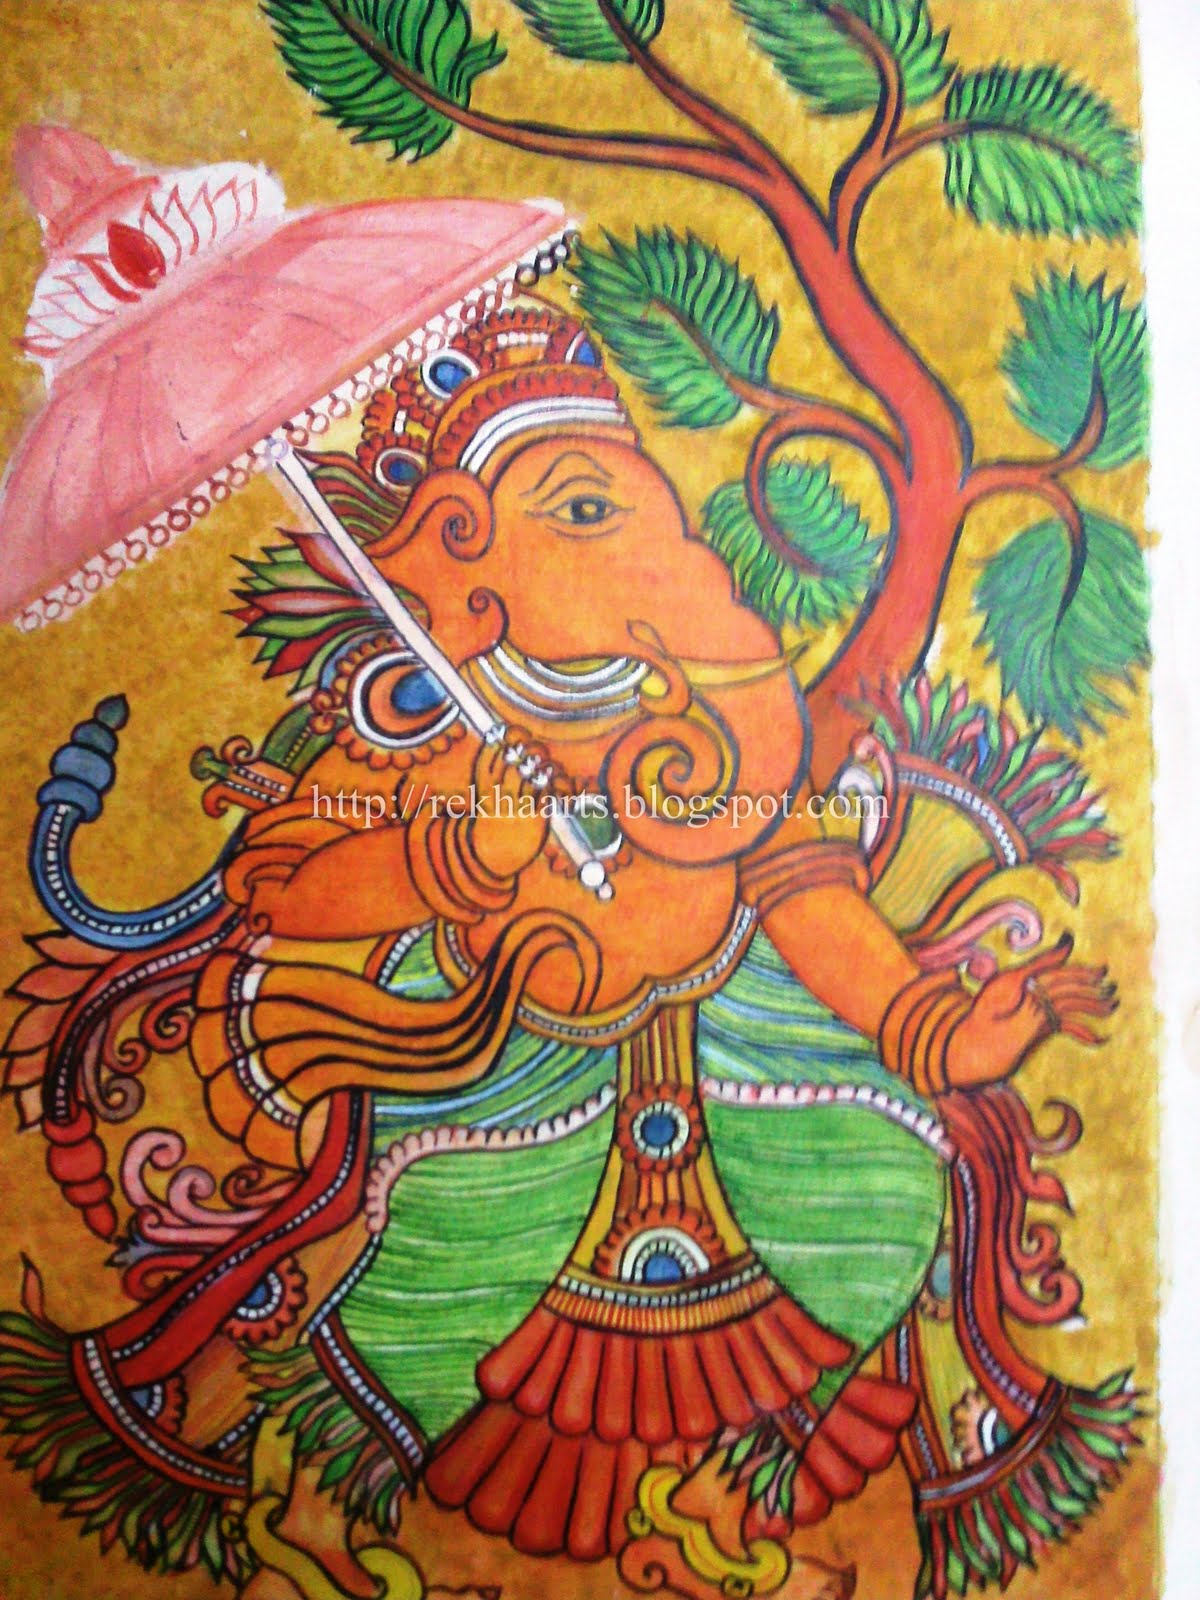 Arts and crafts july 2011 for Mural art of ganesha